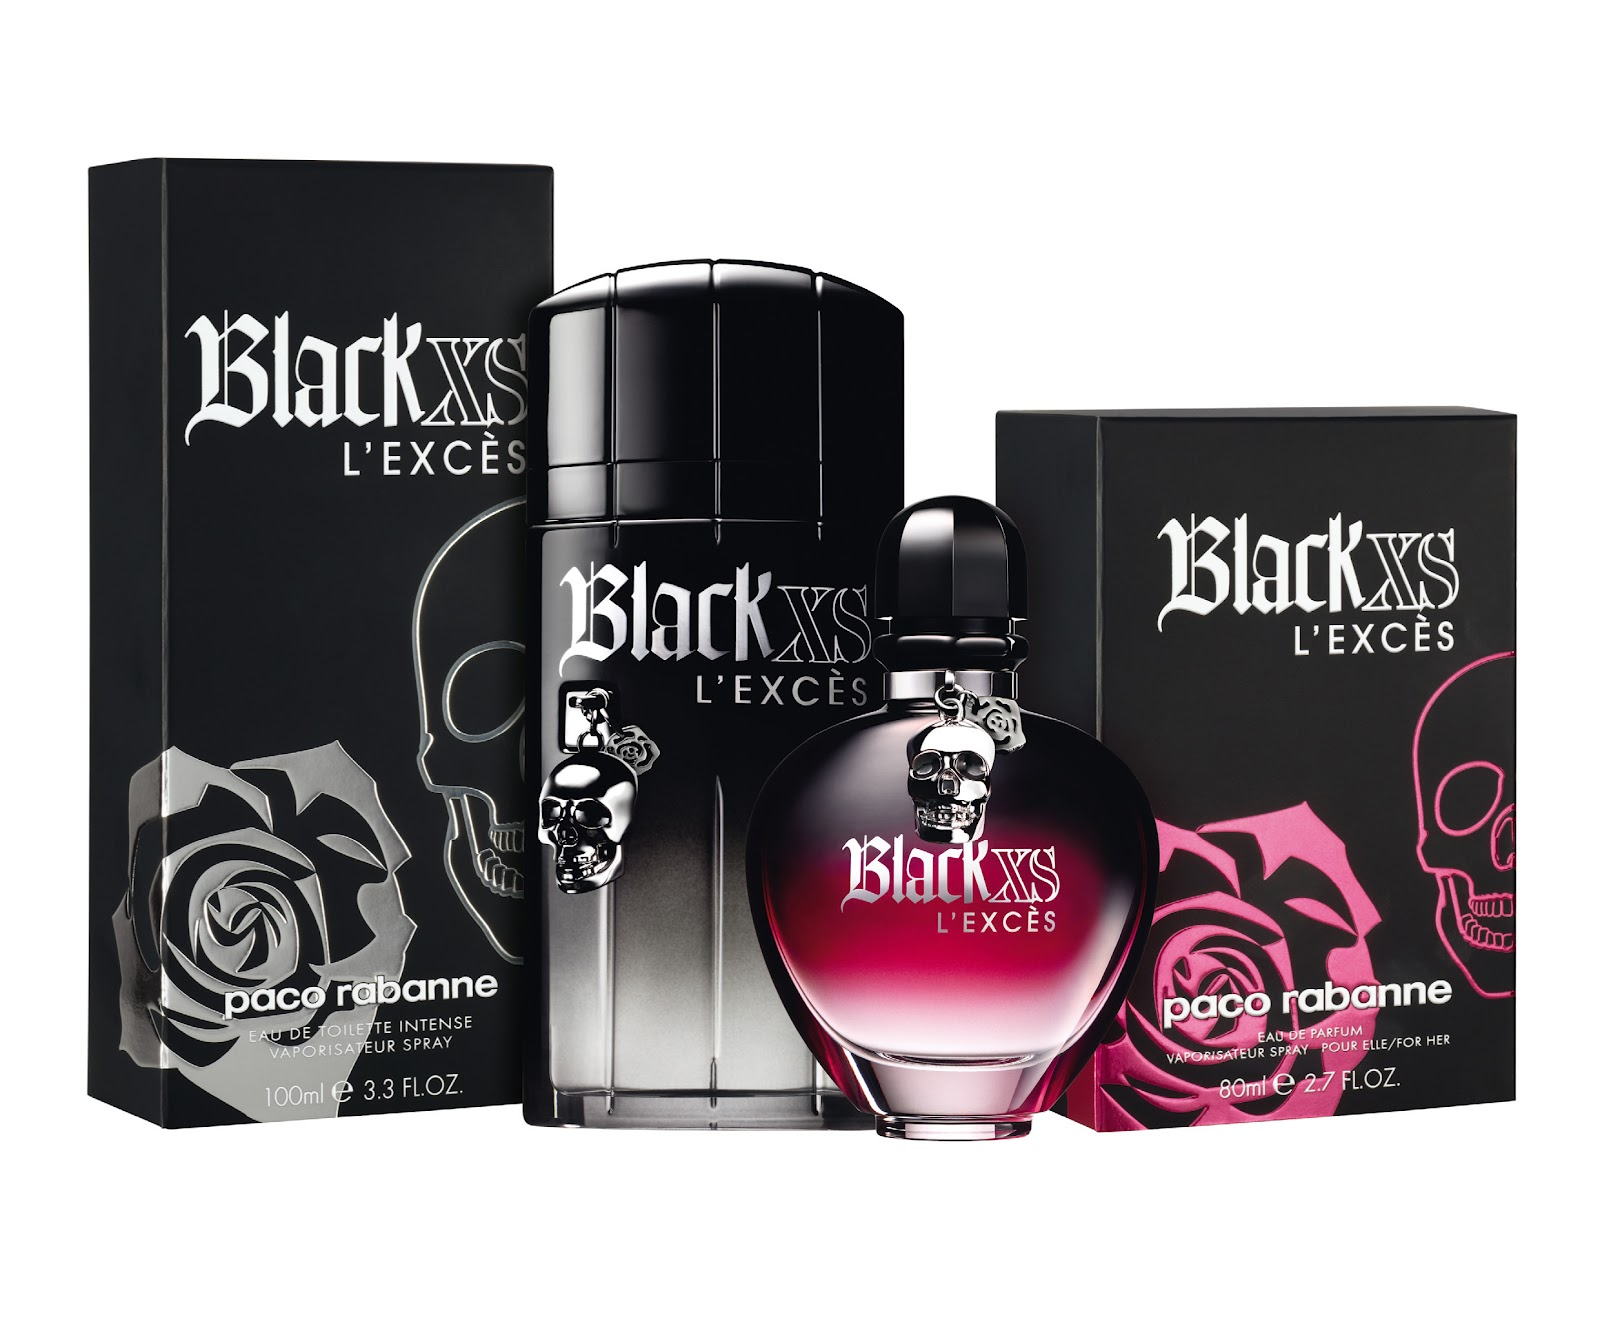 black xs l 39 exc s for him and for her by paco rabanne i 39 m. Black Bedroom Furniture Sets. Home Design Ideas